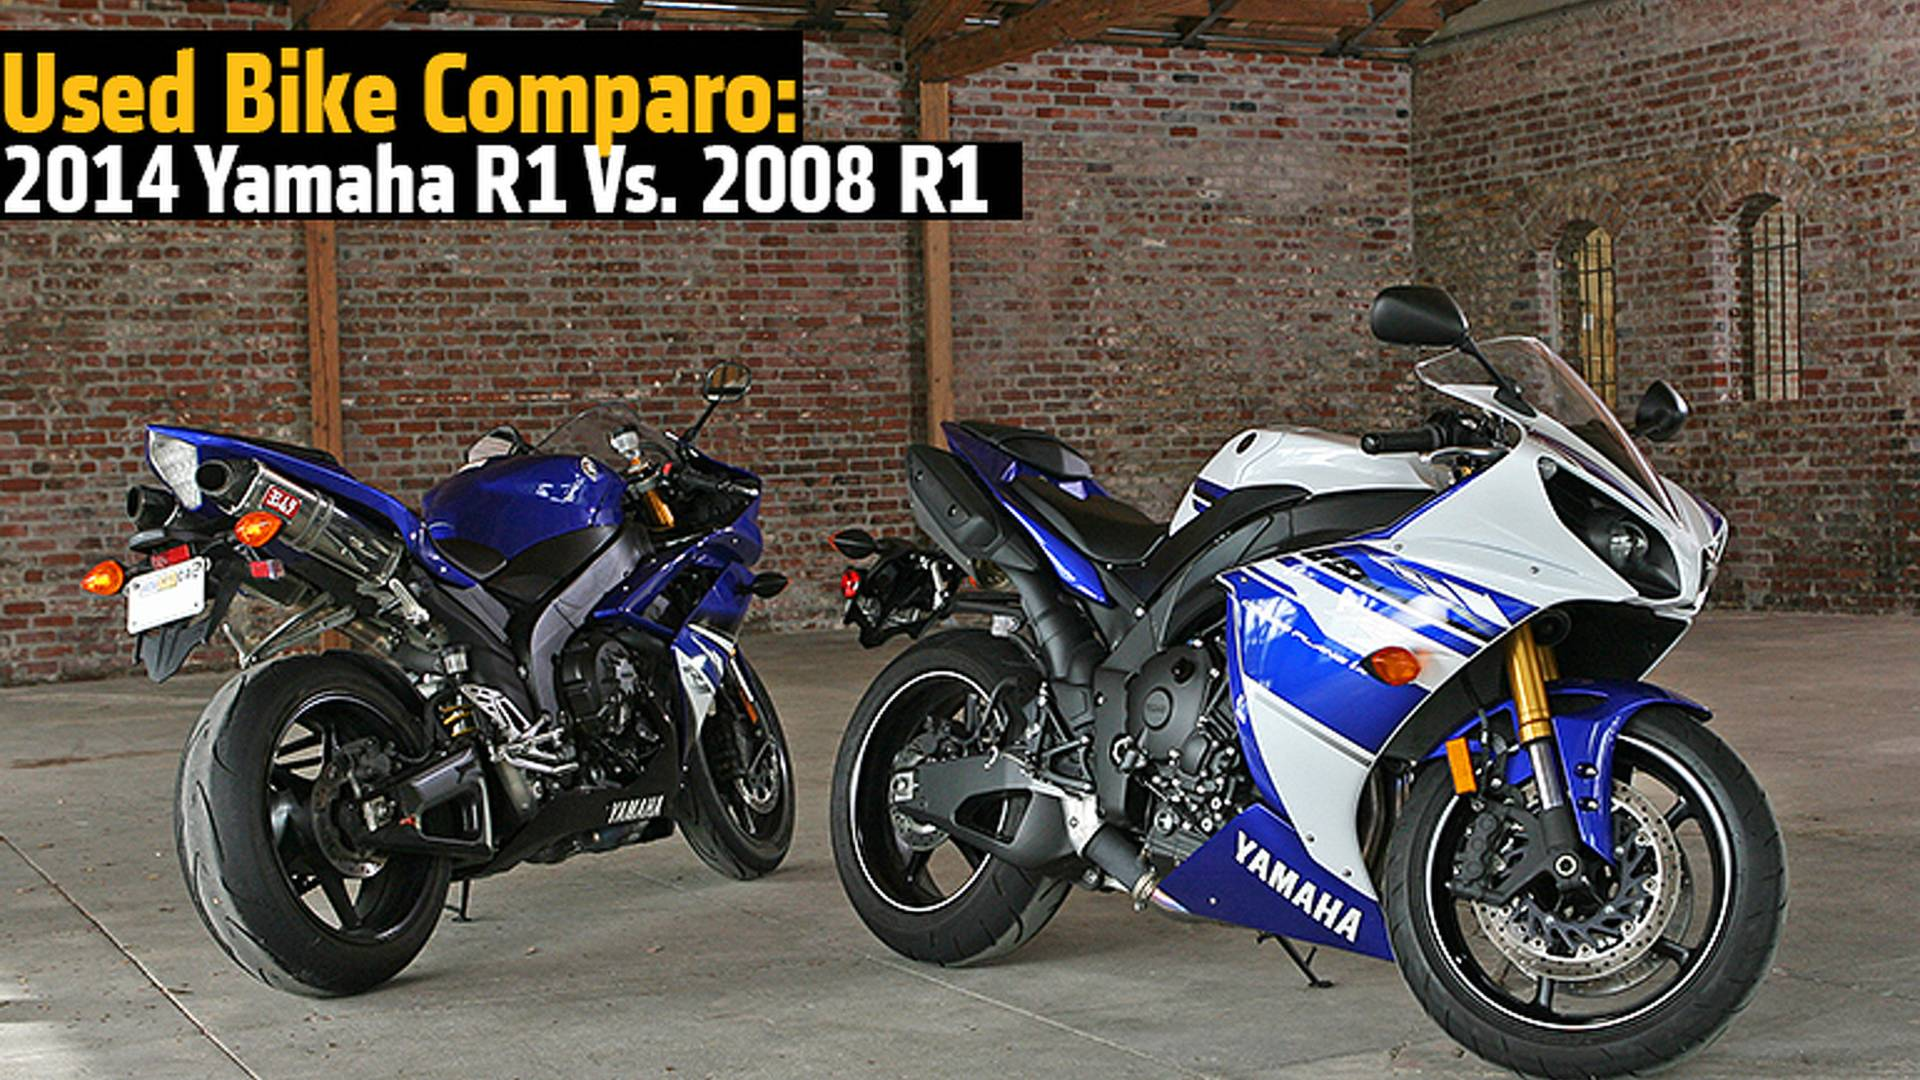 Old Vs. New: Yamaha 2014 YZF-R1 Vs. 2008 YZF-R1